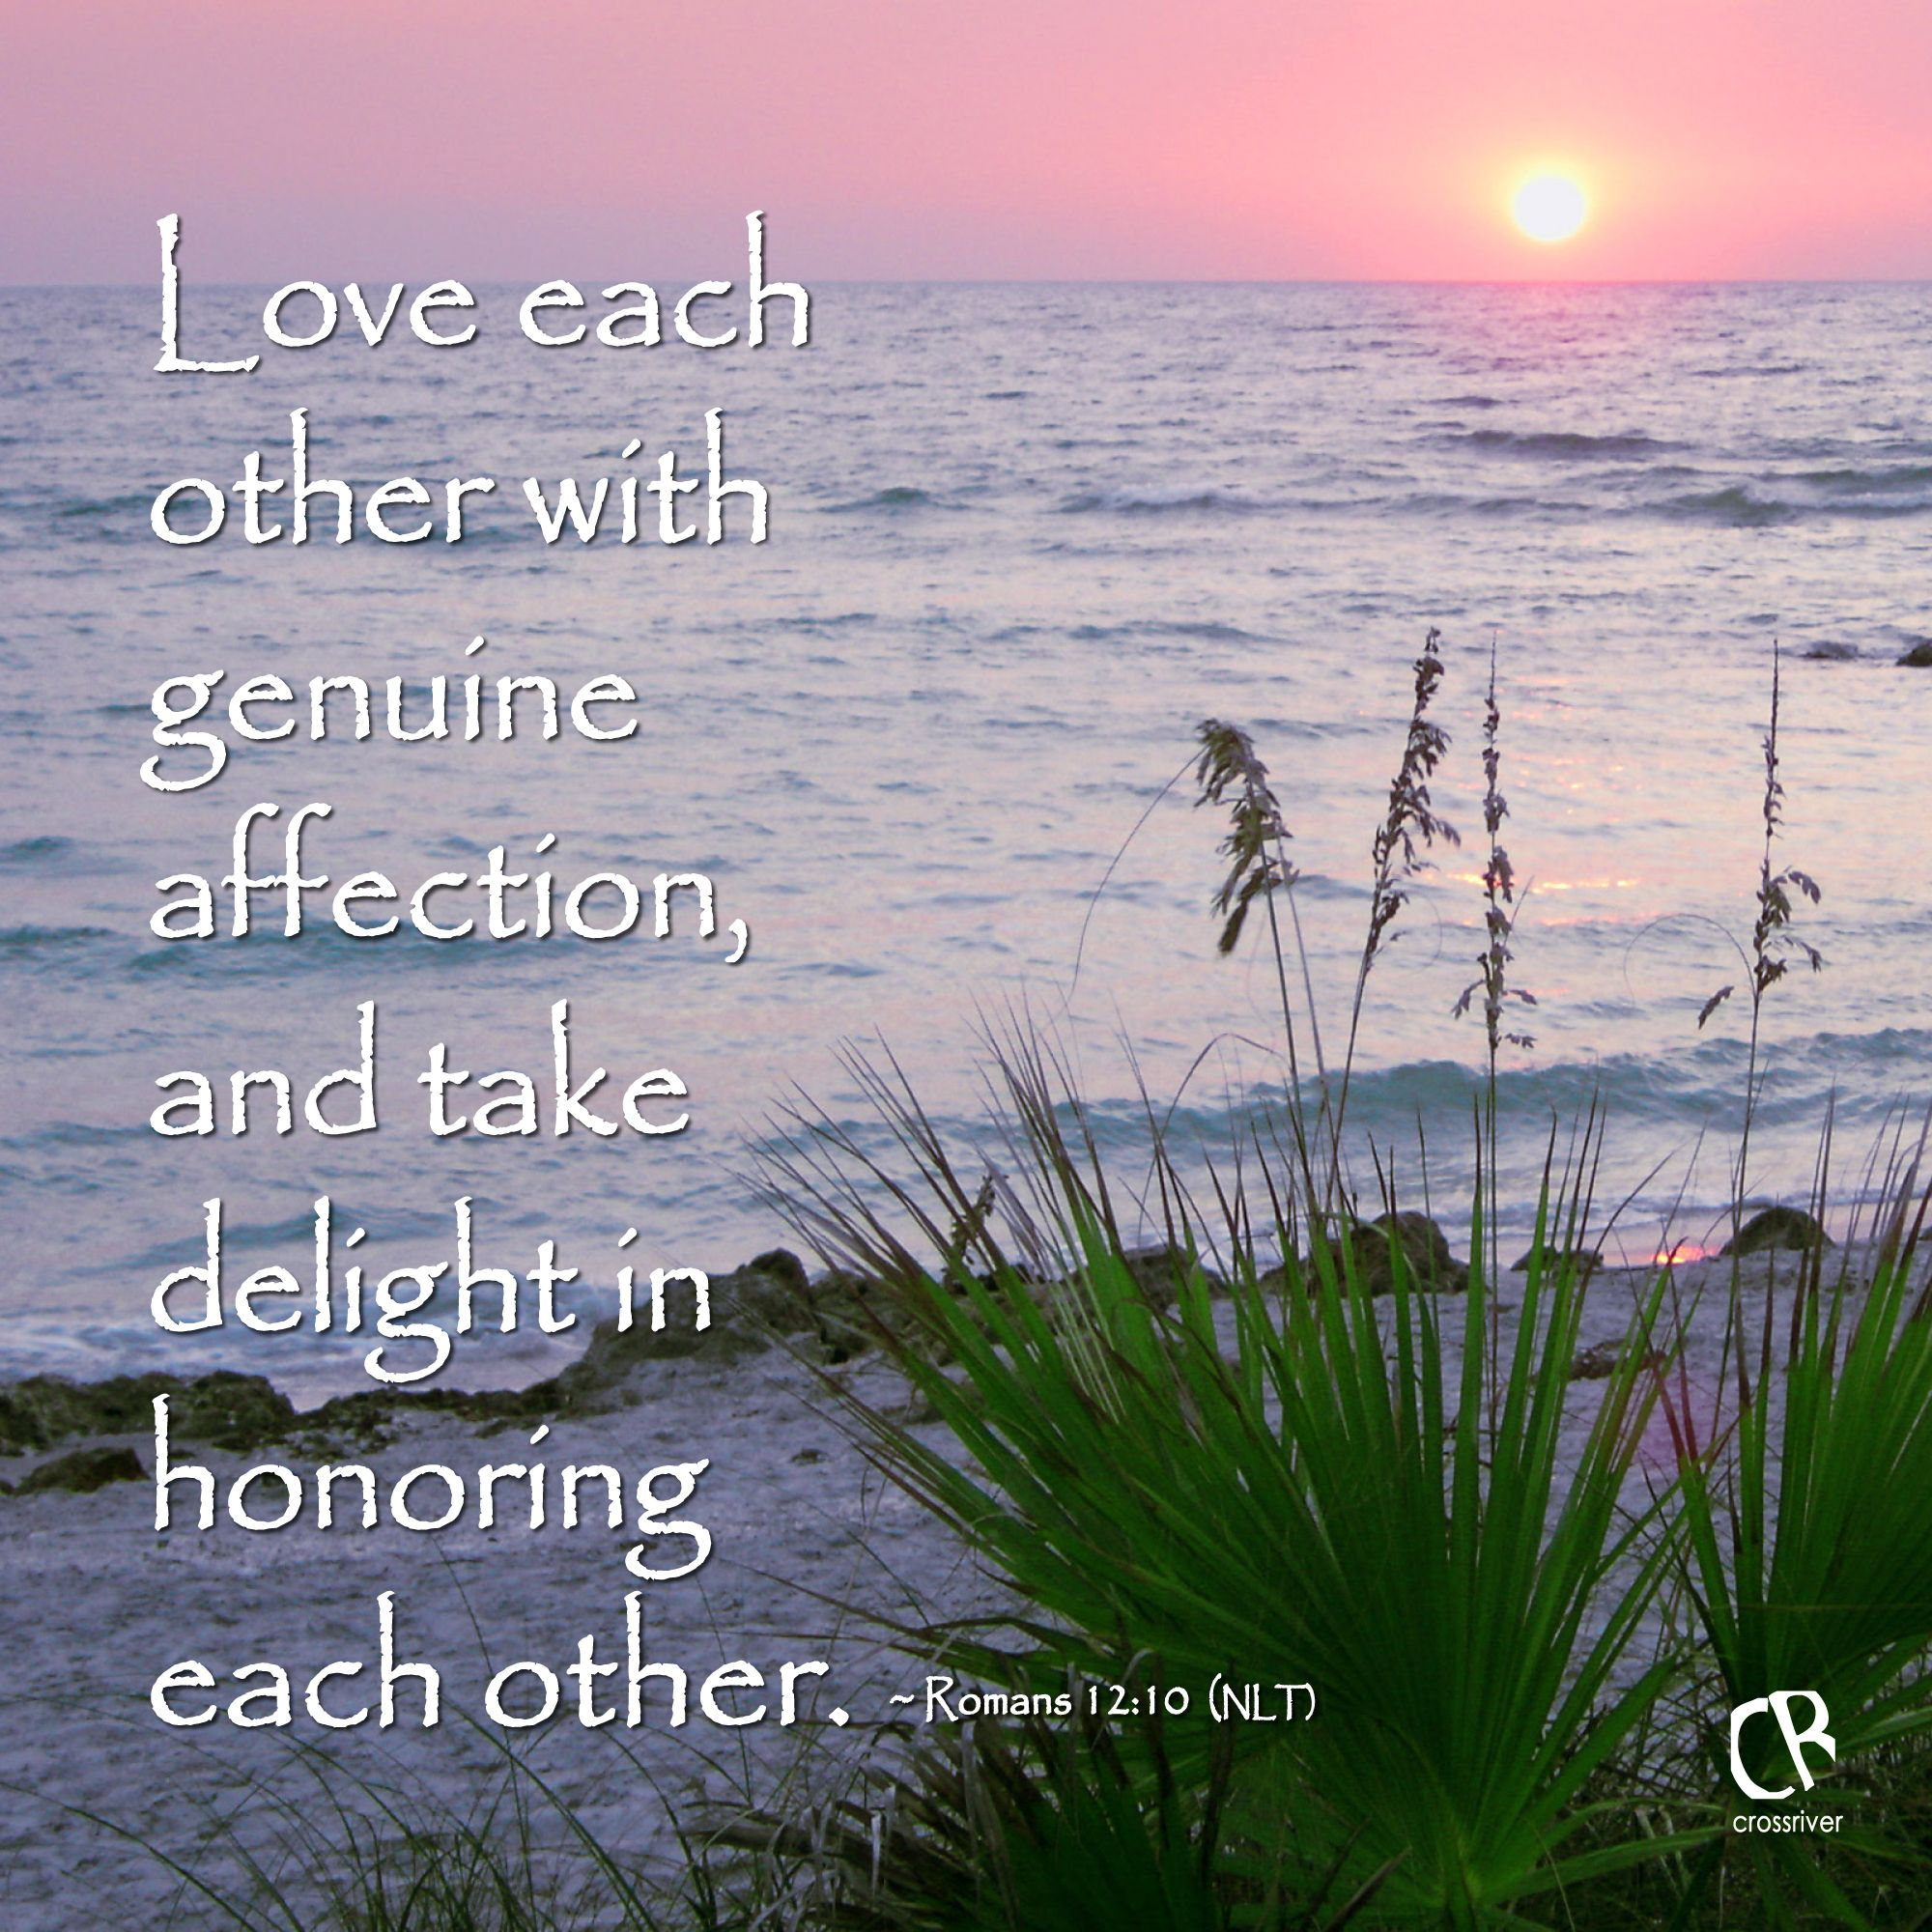 Love Each Other Religious: Love Each Other With Genuine Affection, And Take Delight